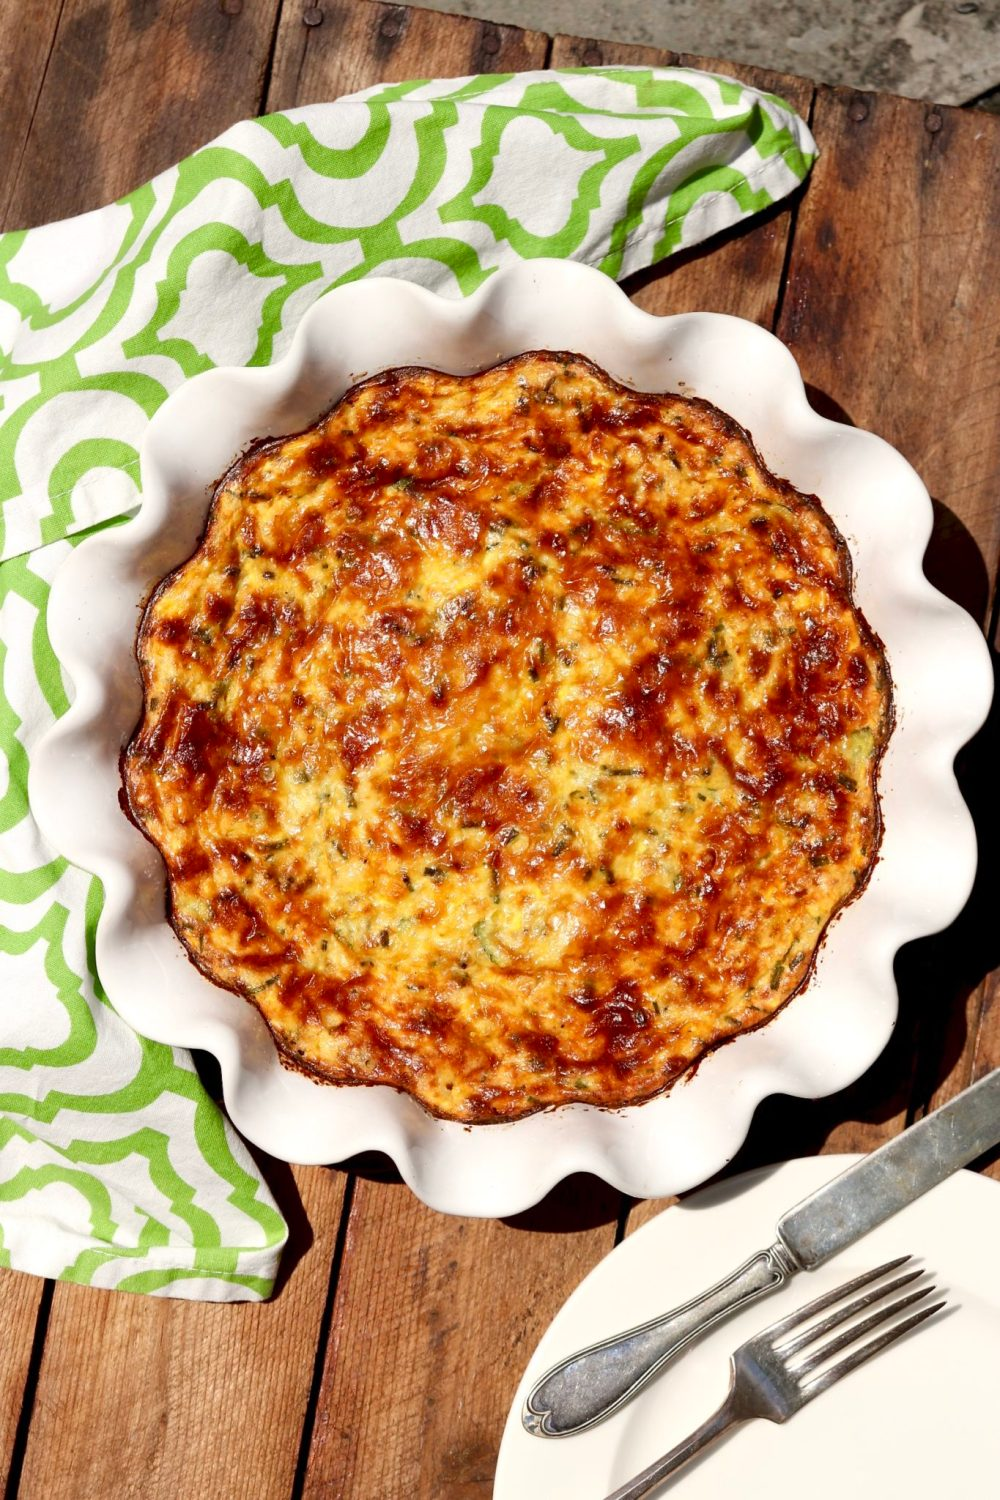 CRUSTLESS ZUCCHINI PIE - Similar to a quiche, loaded with veggies, and perfect as a satisfying meatless meal or side to your favorite protein. (Leftovers improve with age!)